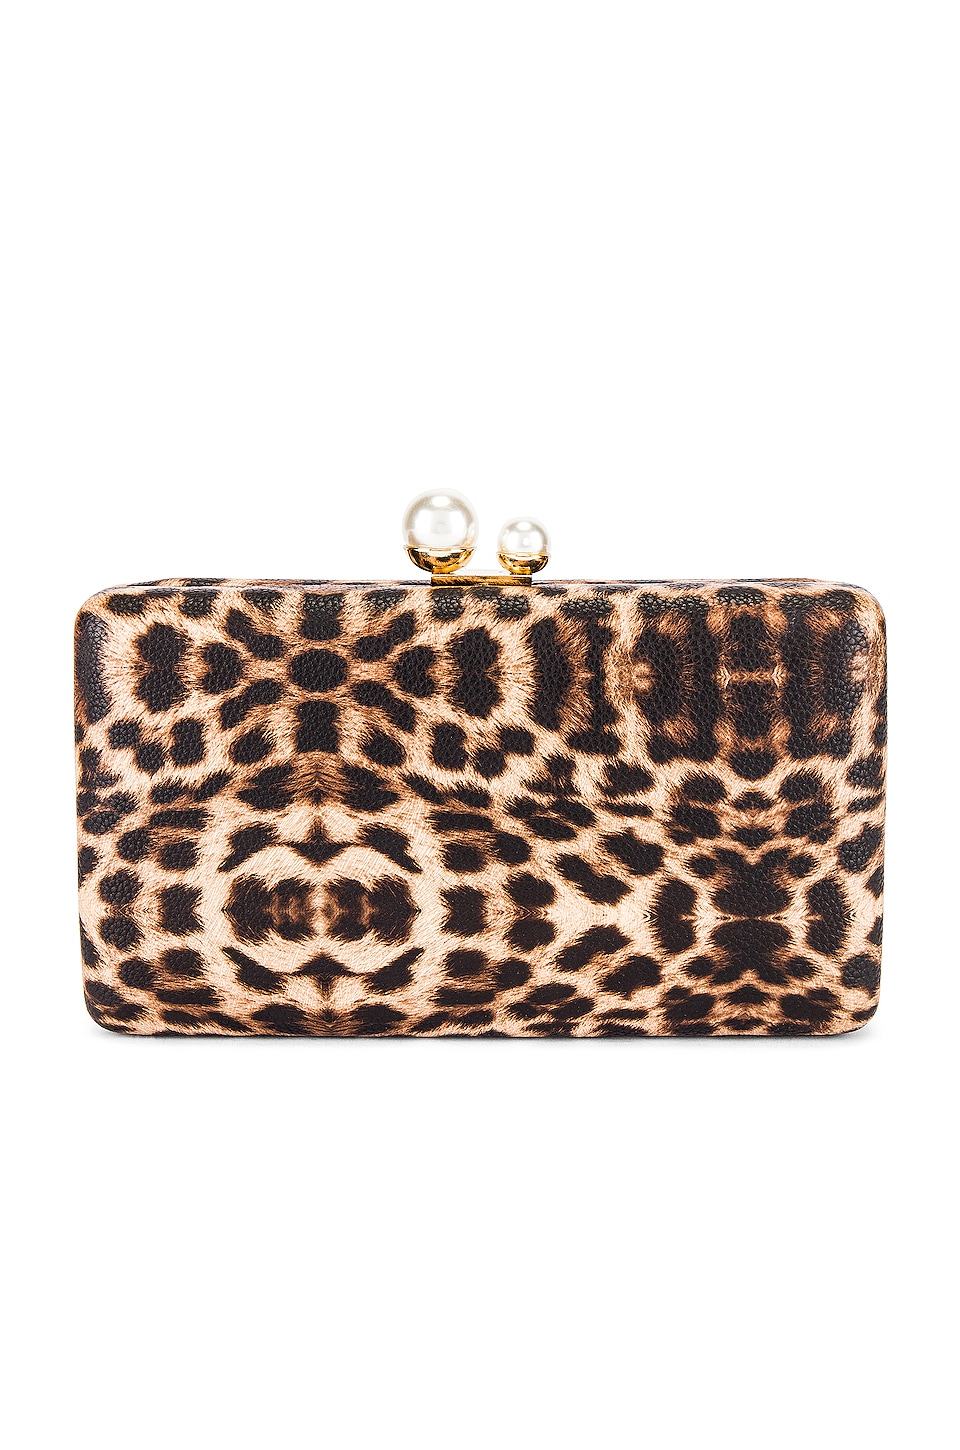 SHASHI Bengali Clutch in Brown